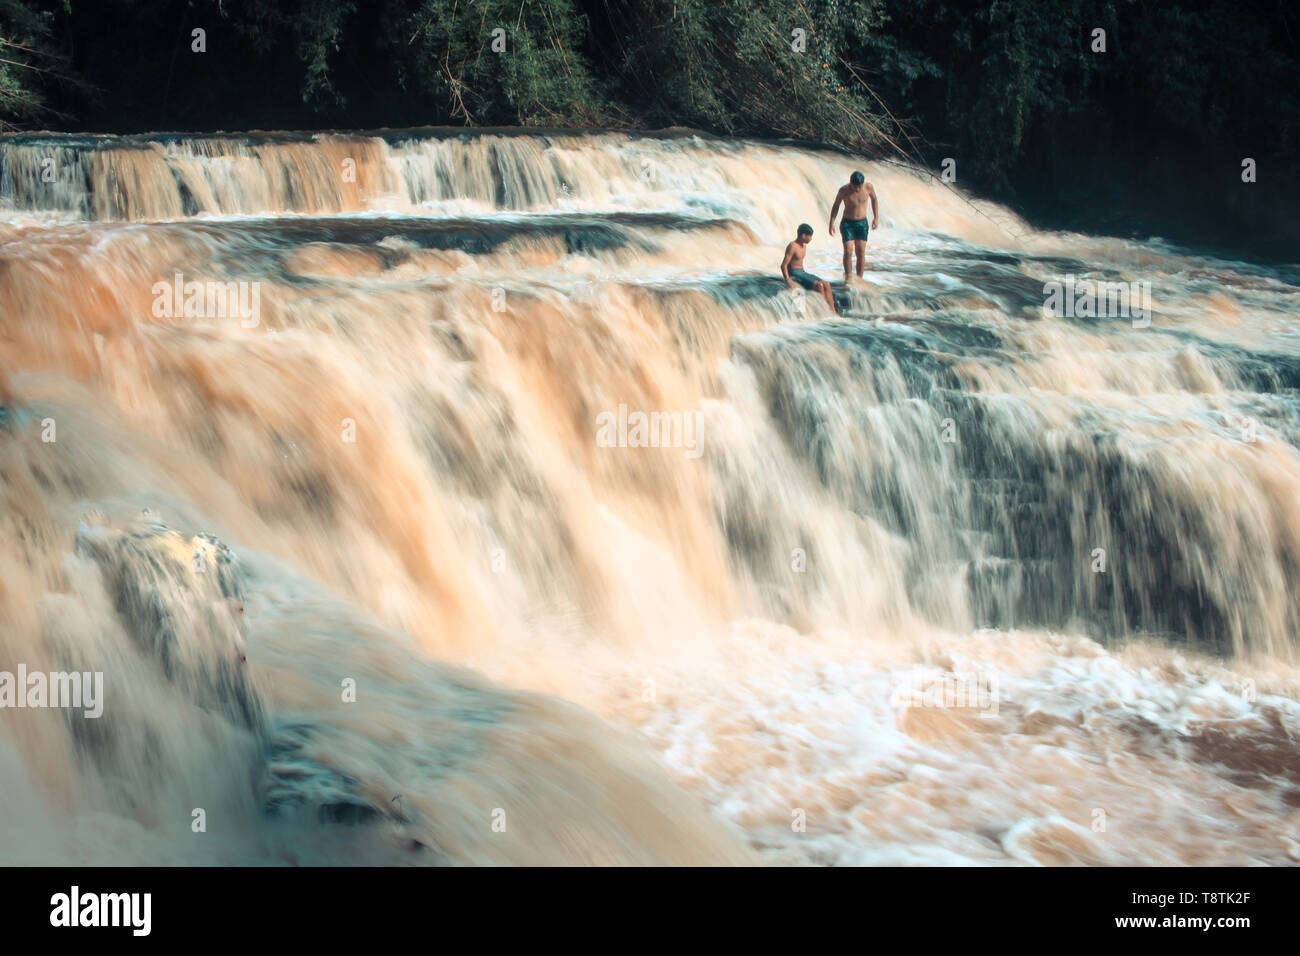 two children playing in a waterfall in nature - Stock Image